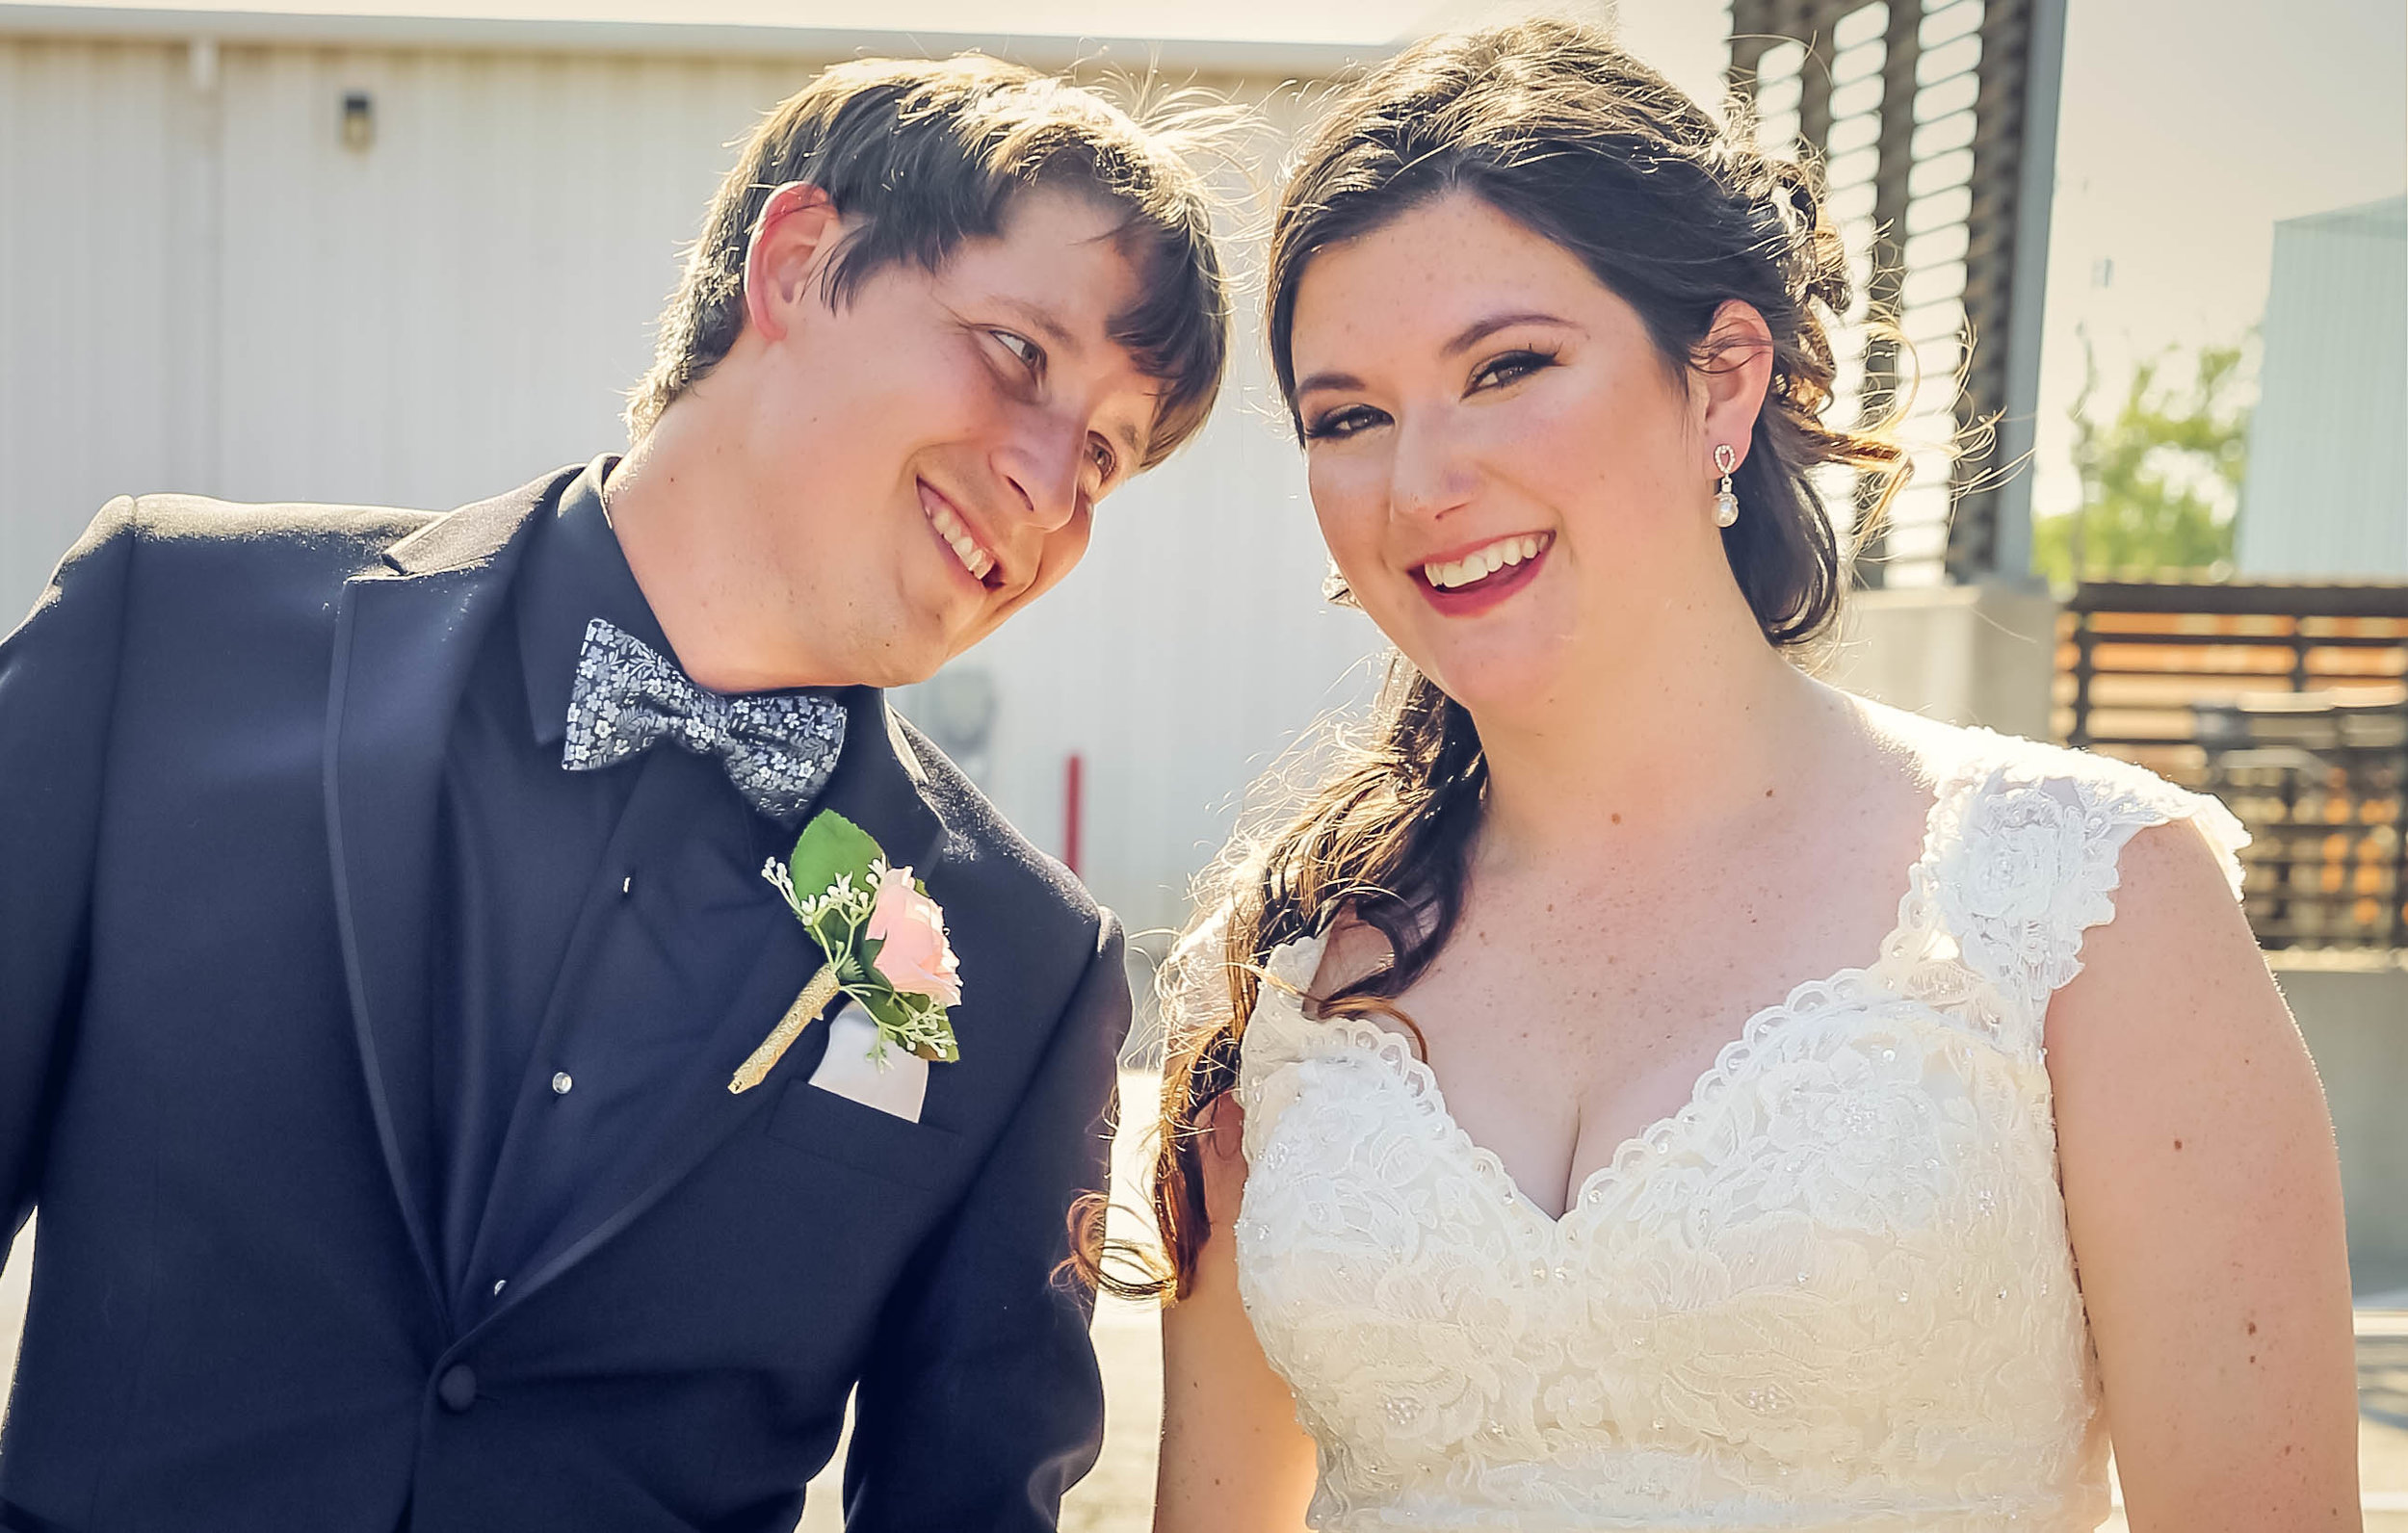 Is this the most adoring look ever from the groom?